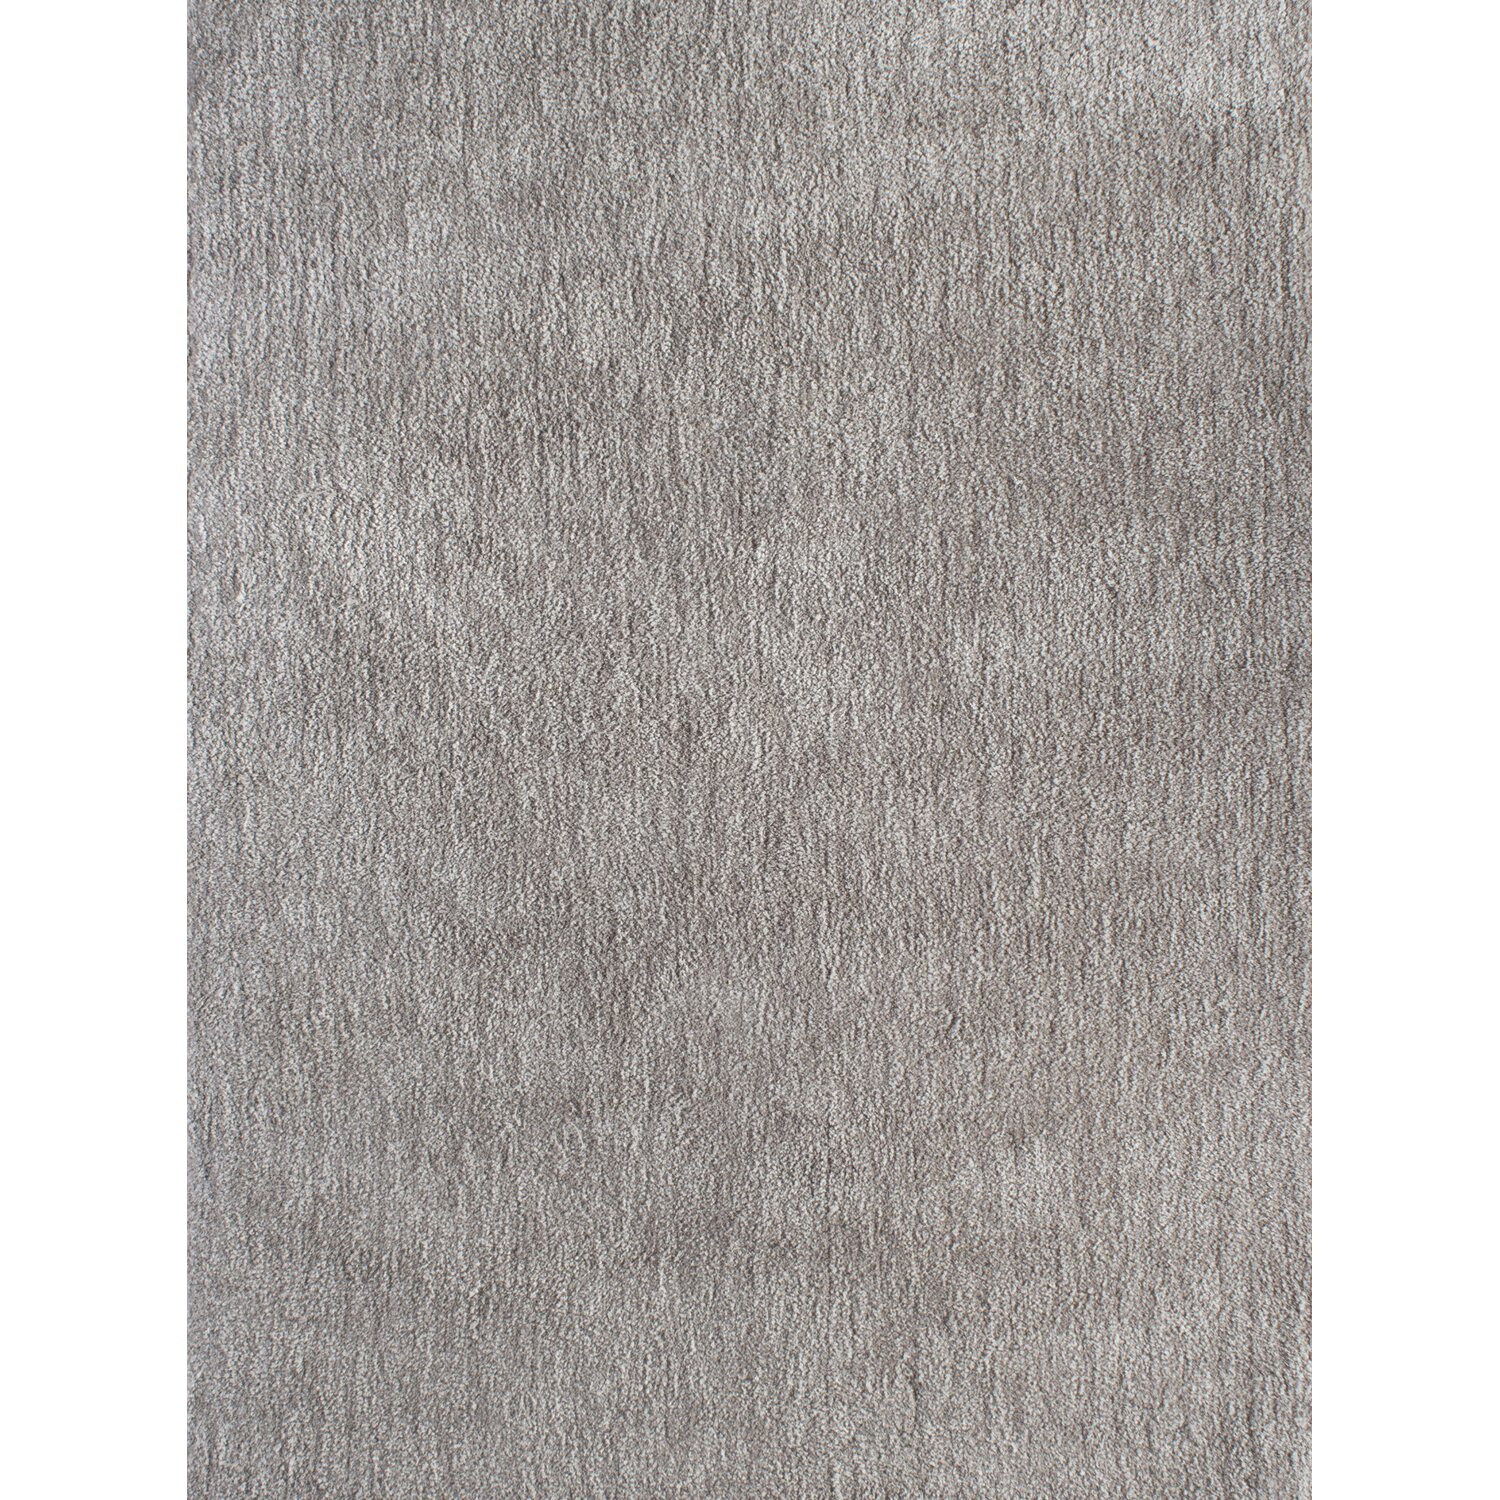 bb home passion Barbara Becker Teppich Touch 140 cm x 200 cm Beige